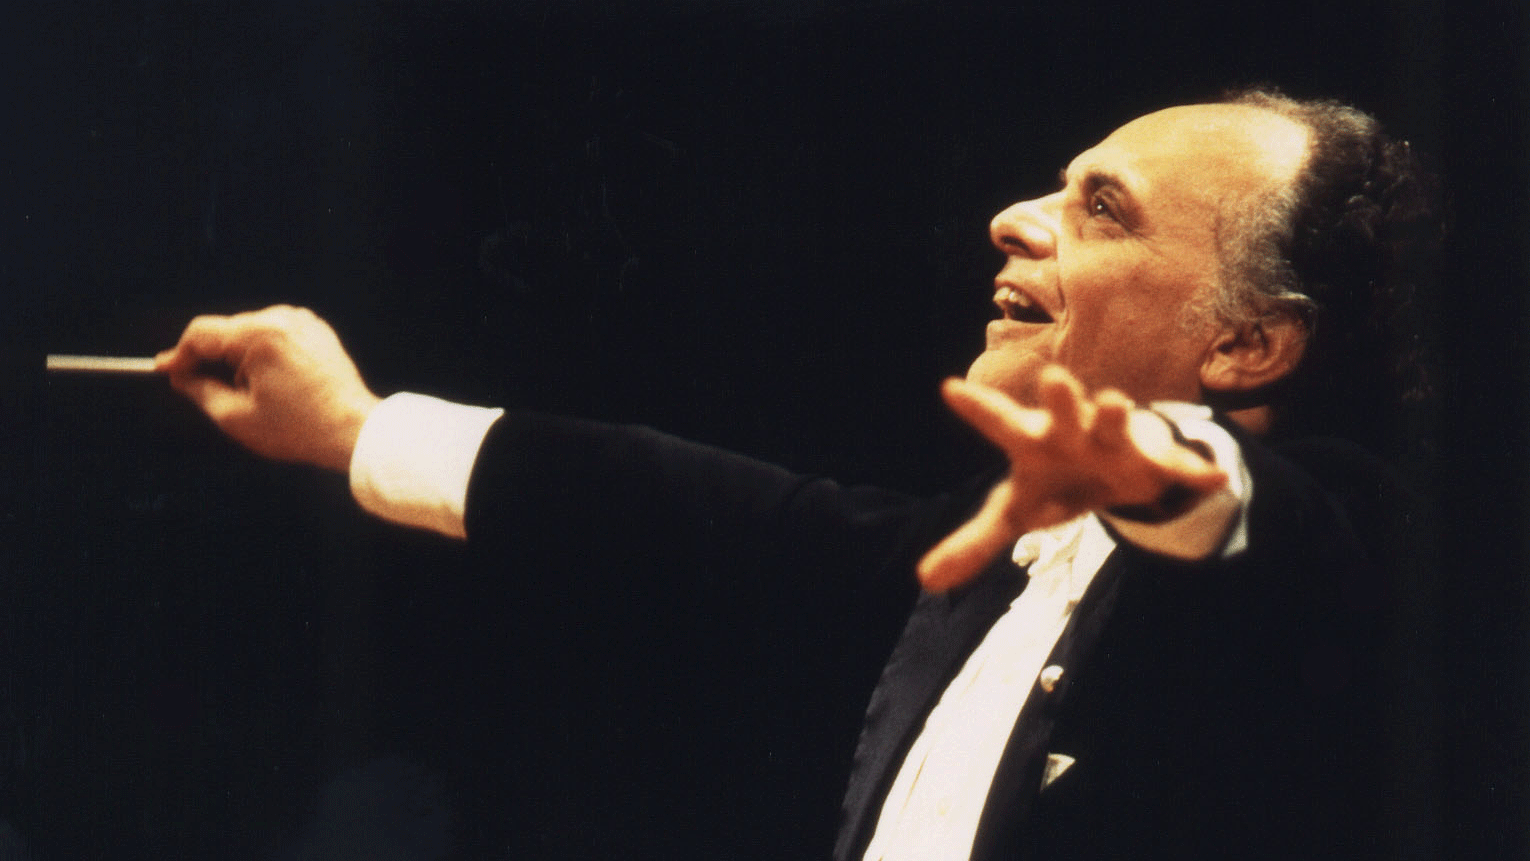 Lorin Maazel conducts his symphonic synthesis of Wagner's The Ring of the Nibelung